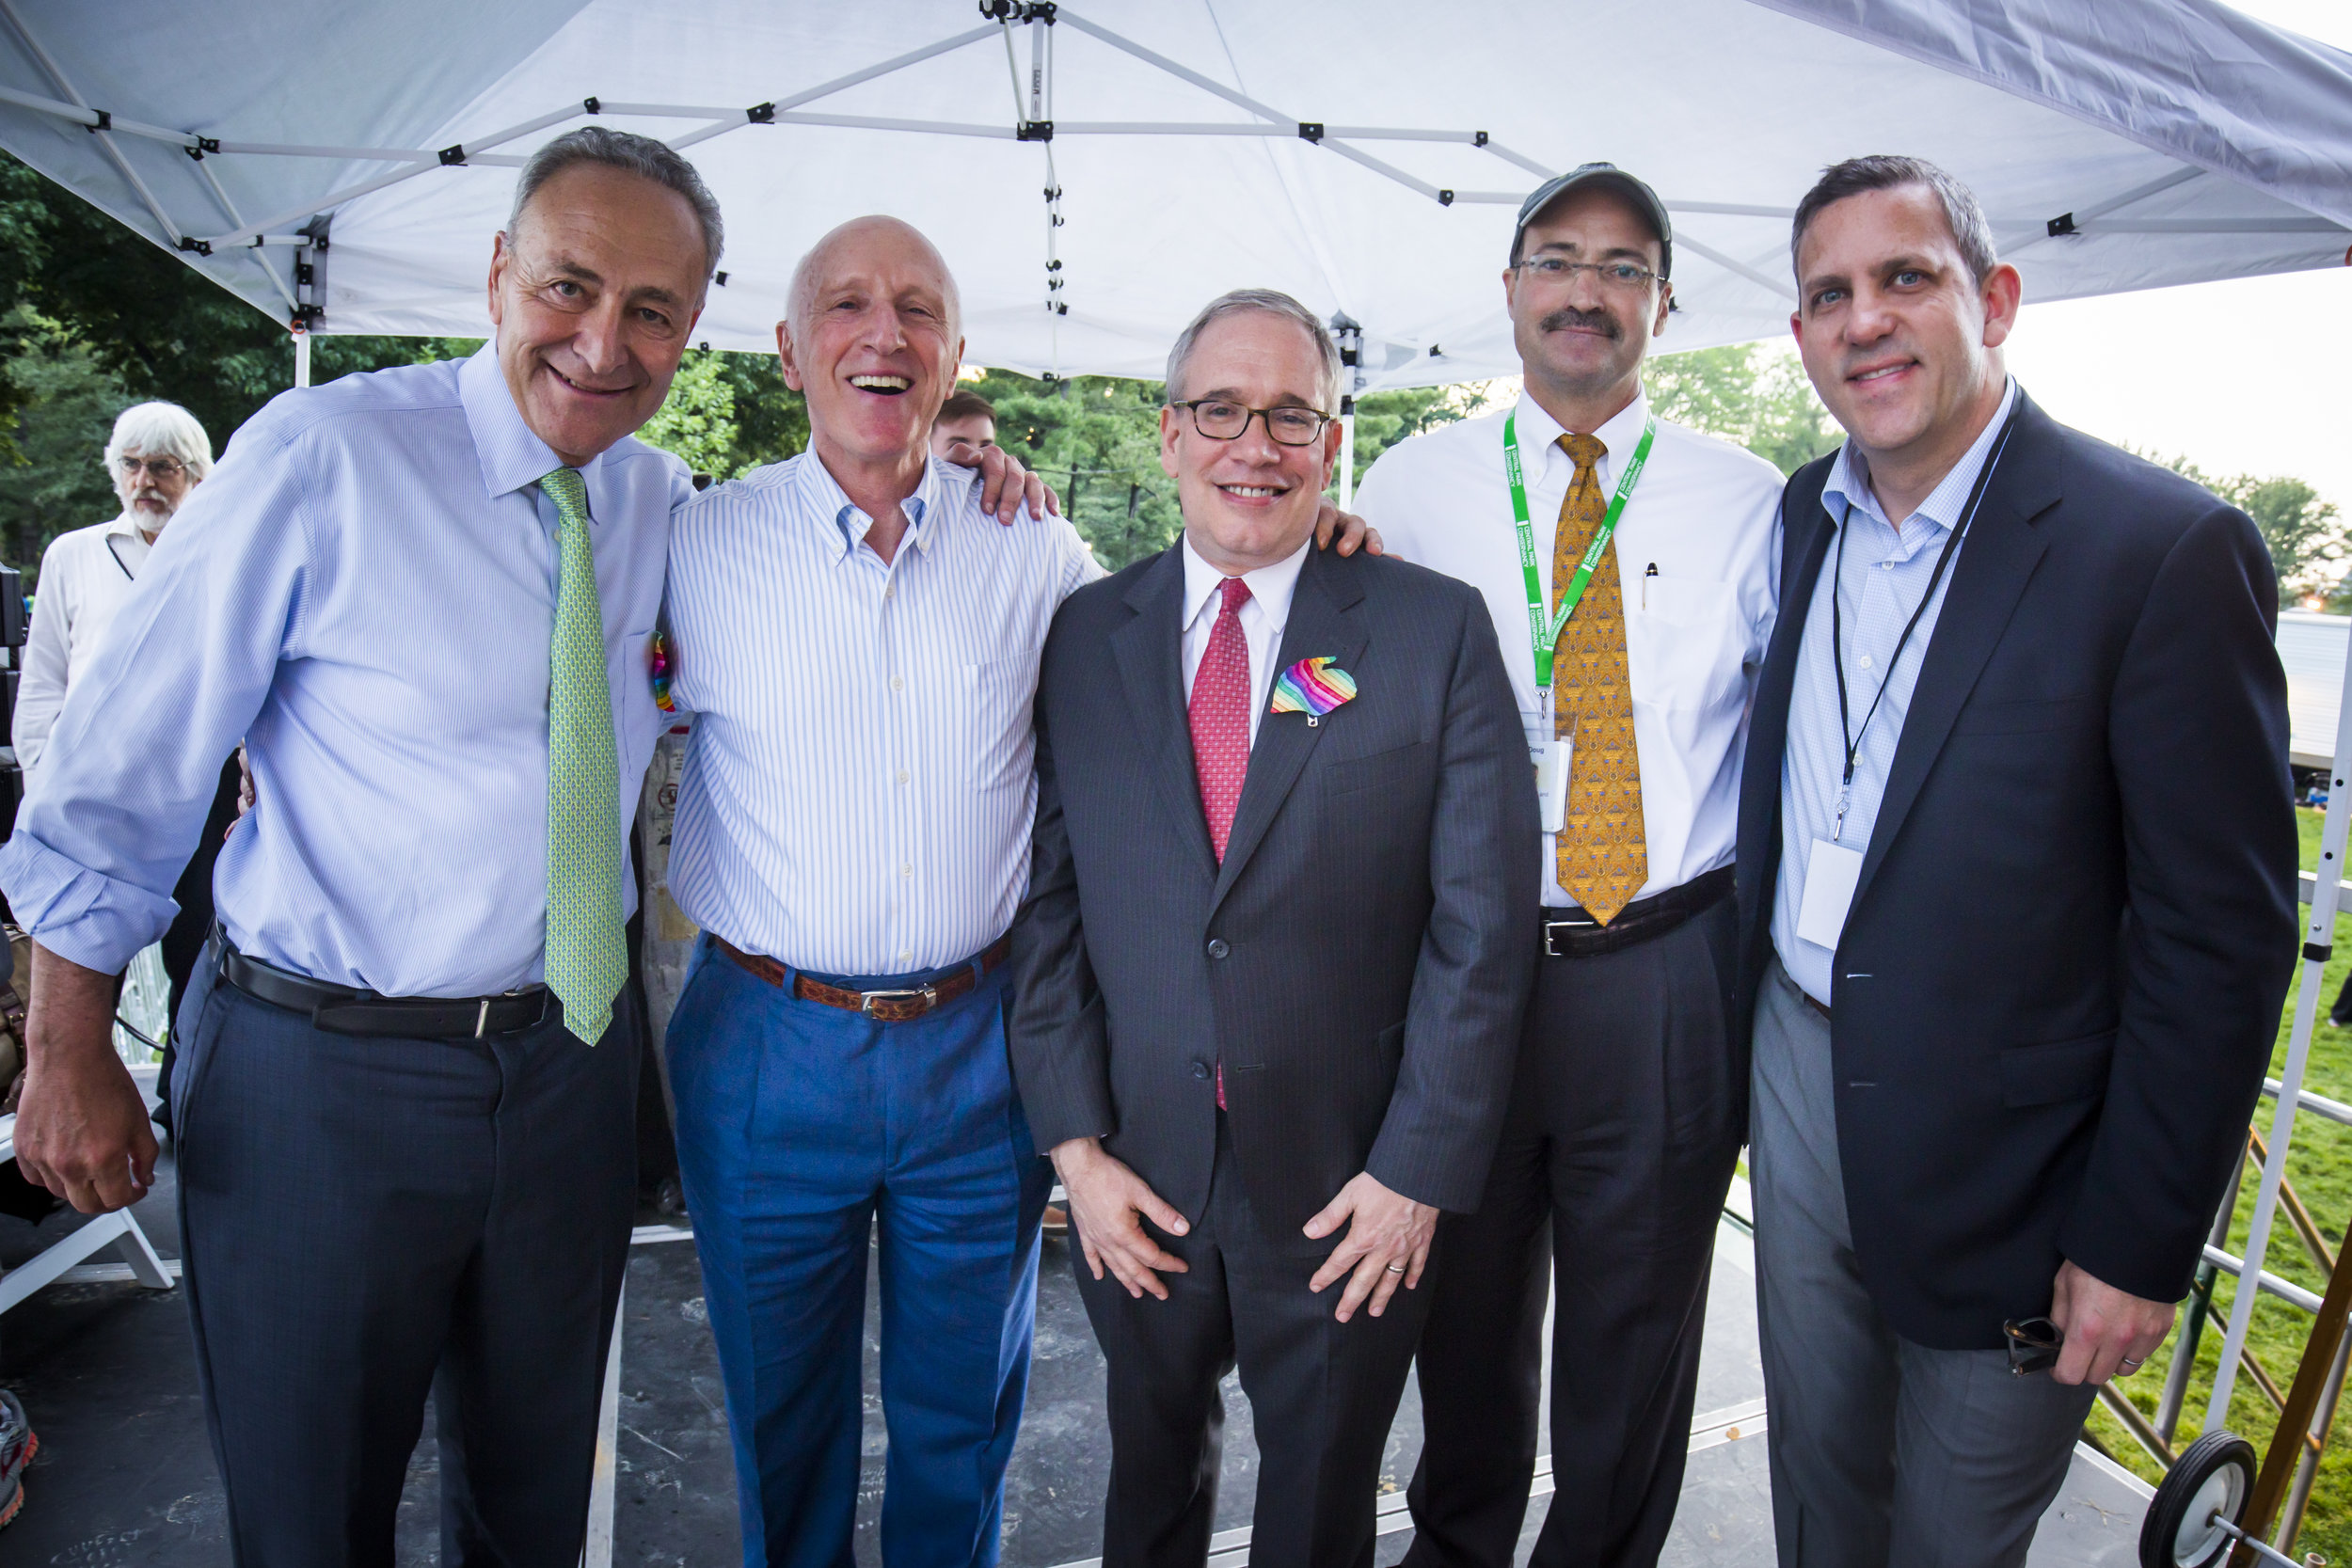 The Concerts in the Parks are civic occasions,as evidenced by the 2016 speaker line-up: U.S. Senator Charles E. Schumer; New York Philharmonic Chairman Oscar S. Schafer; New York City Comptroller Scott M. Stringer; Doug Blonsky, President and CEO of the Central Park Conservancy; and Philharmonic President Matthew VanBesien.